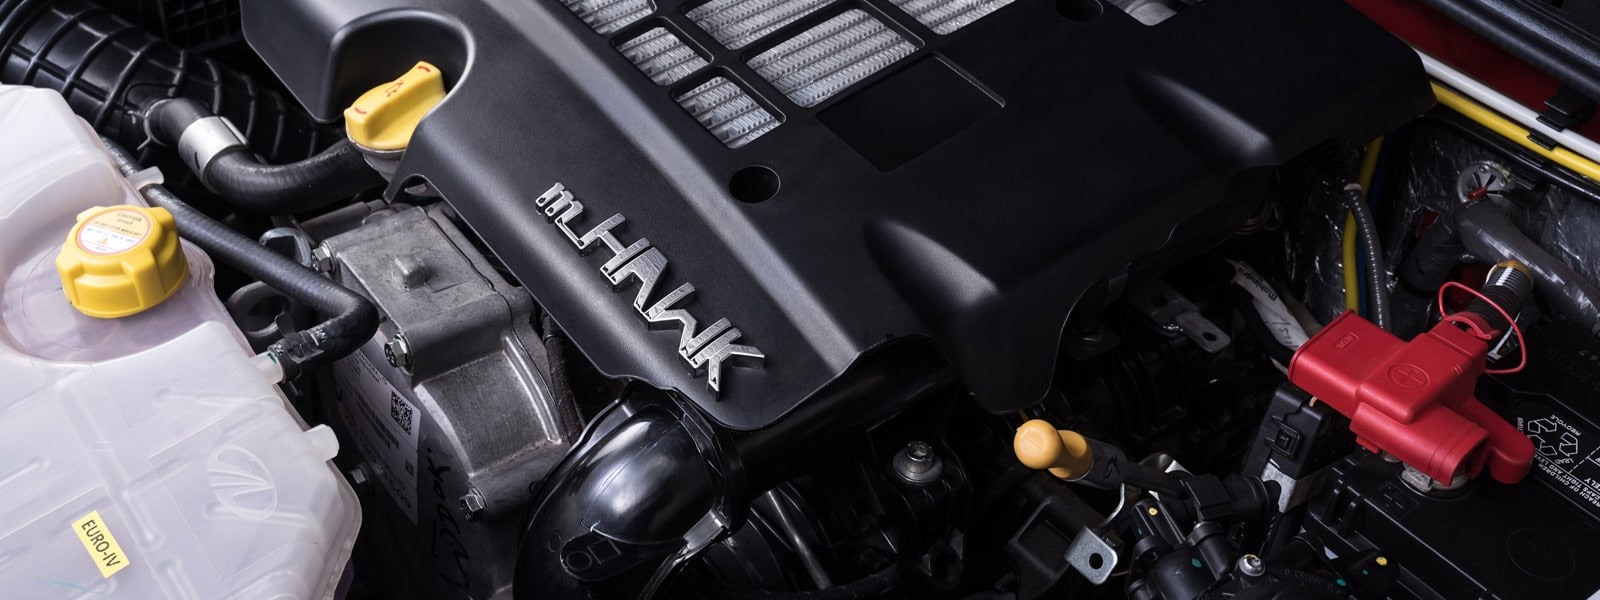 2.2L, 4-cylinder mHawk turbo-diesel engine